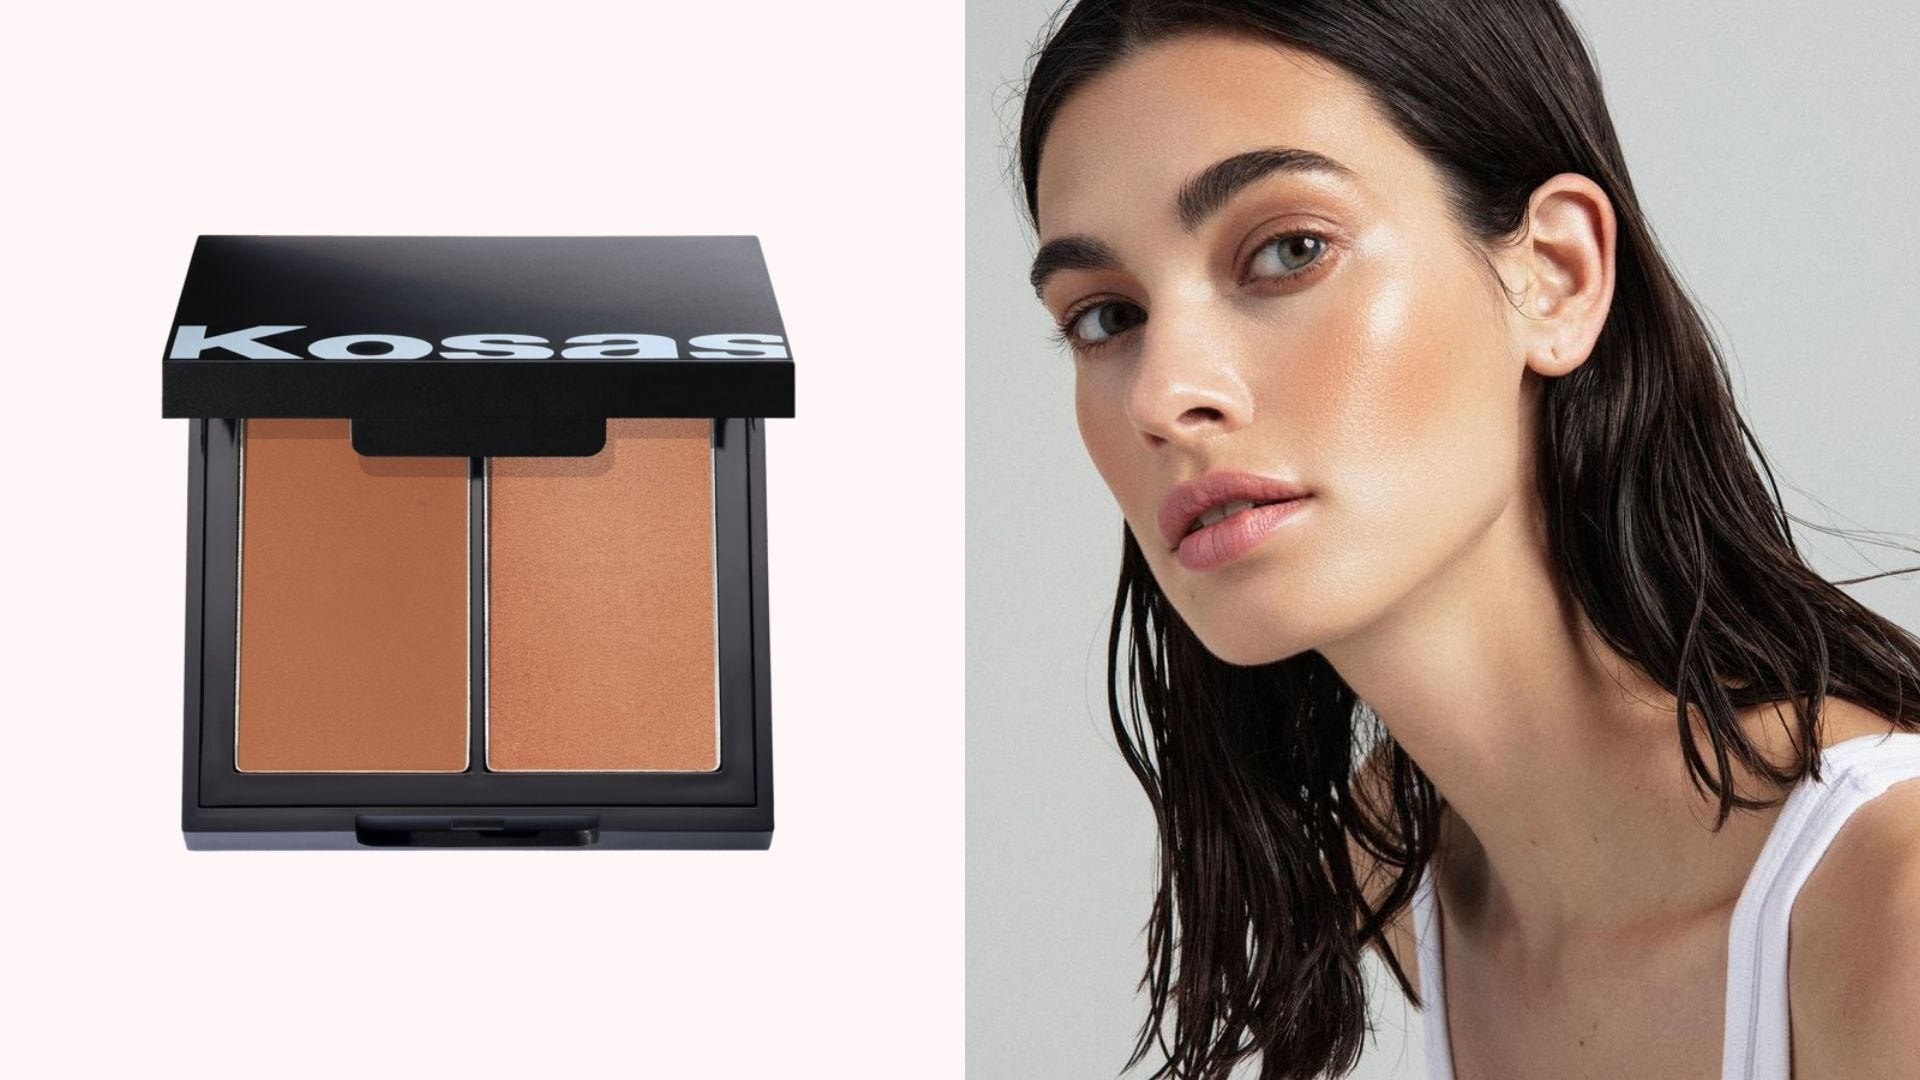 On the left, a Kosas Color & Light Palette on a white background, and on the right, a woman wearing the product on her cheeks.